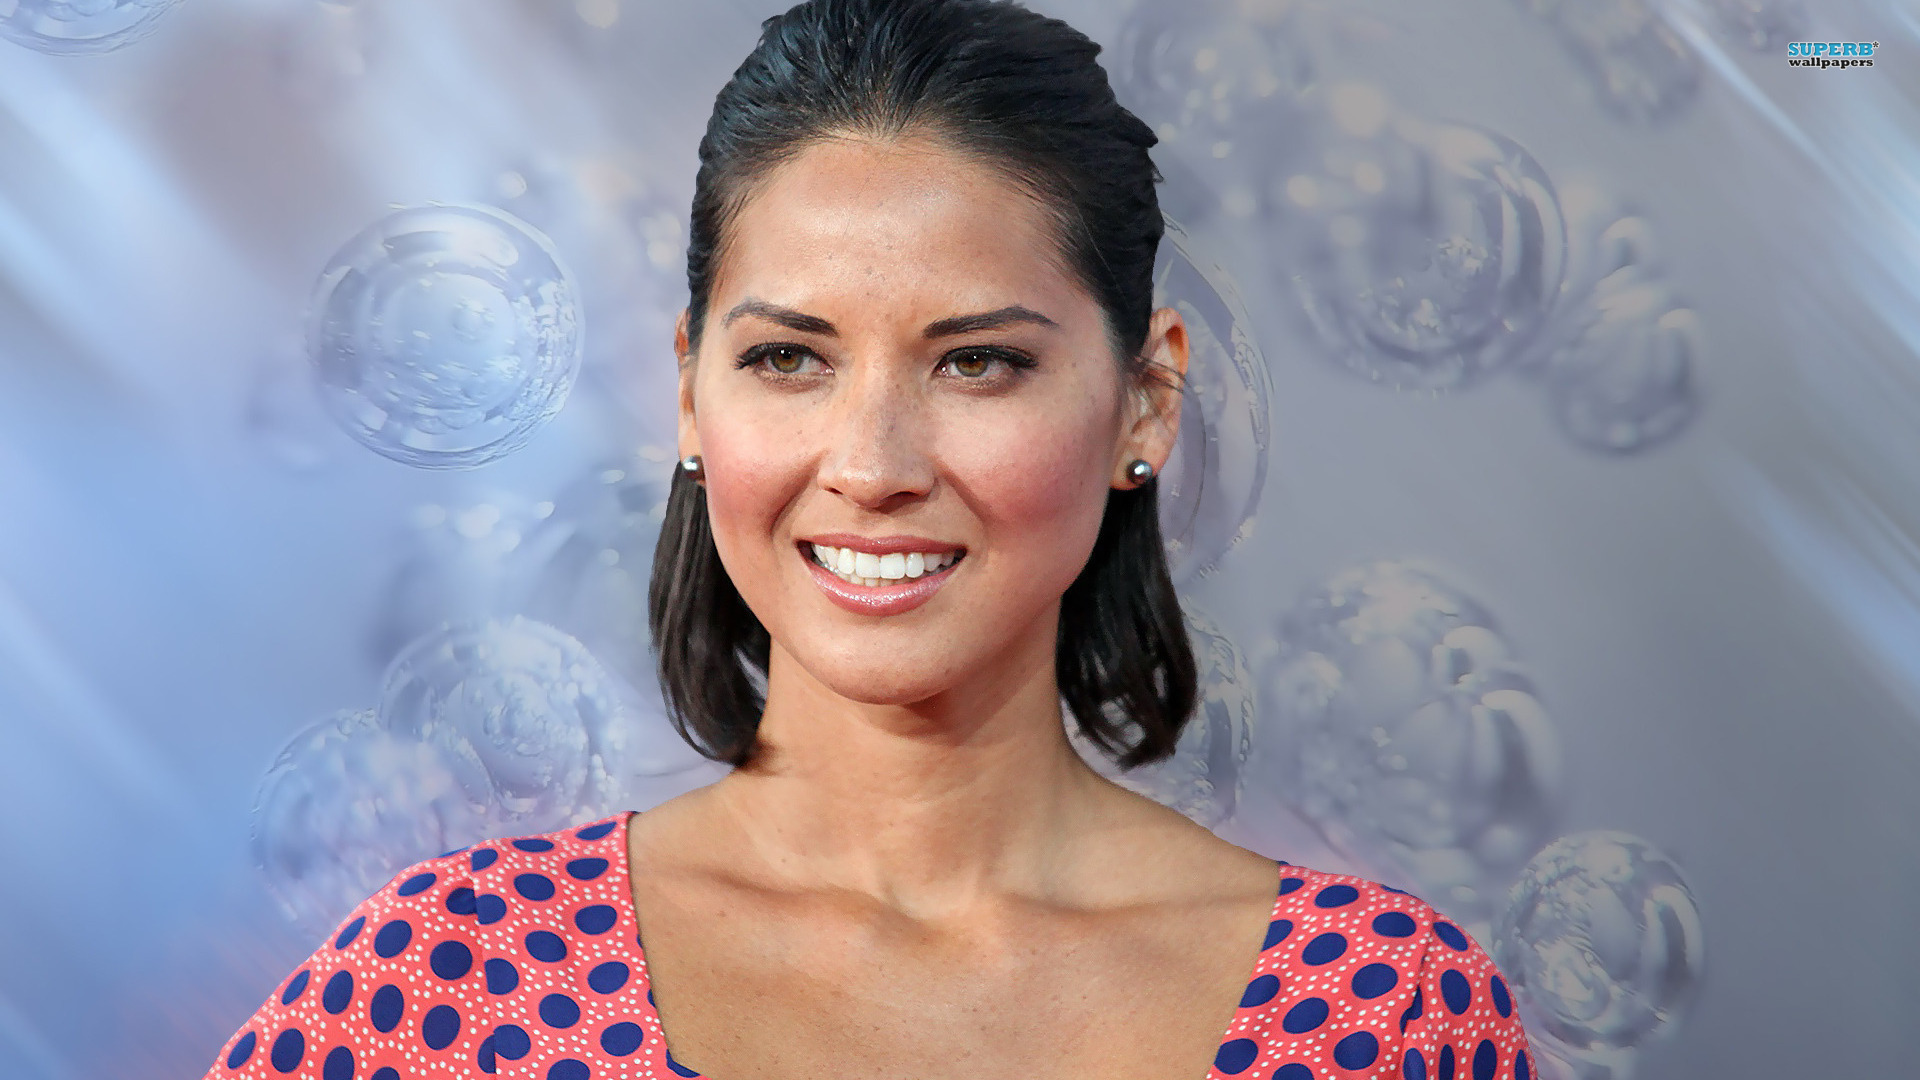 olivia munn30 1920x1080 wallpapers - photo #20